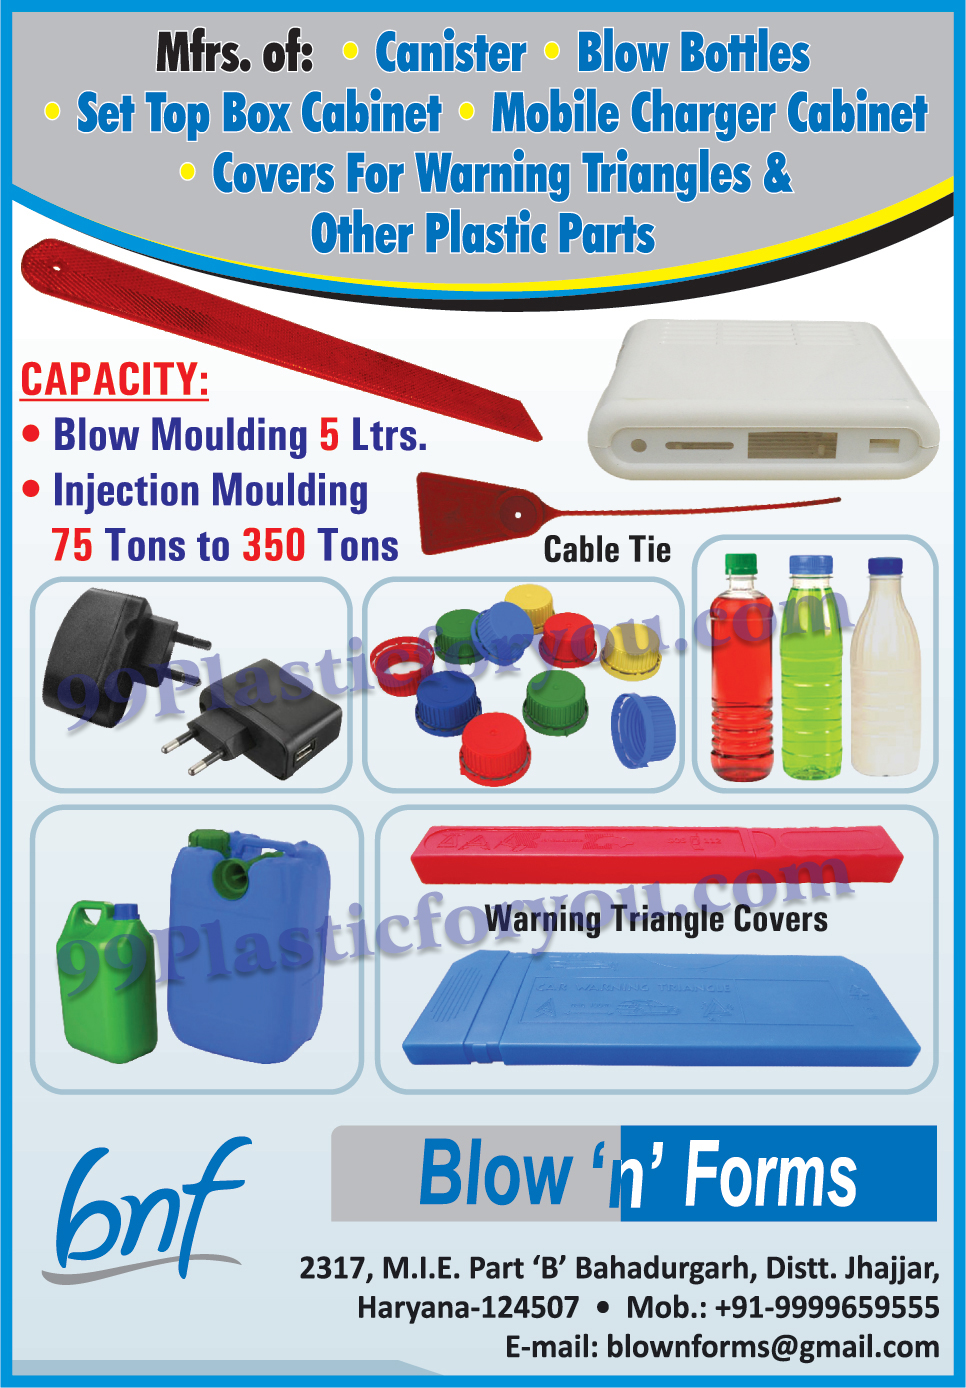 Plastic Canister, Blow Bottles, Set Top Box Cabinet, Mobile Charger Cabinet, Warning Triangle Covers, Blow Moulding, Injection Moulding, Cable Tie